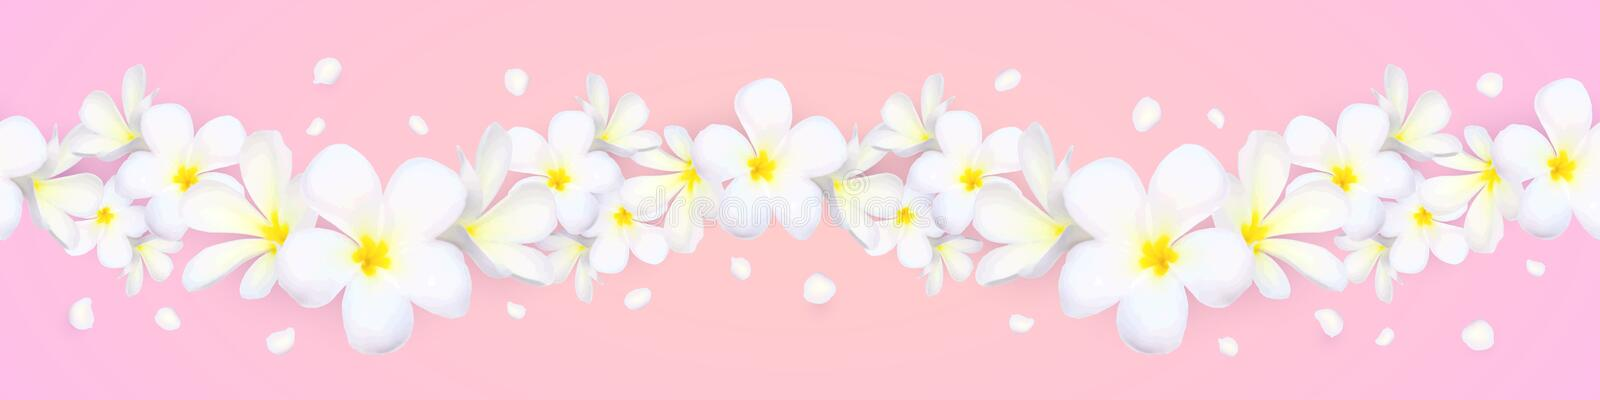 Vector seamless frangipani flowers horizontal border with flying petals on pink background stock illustration